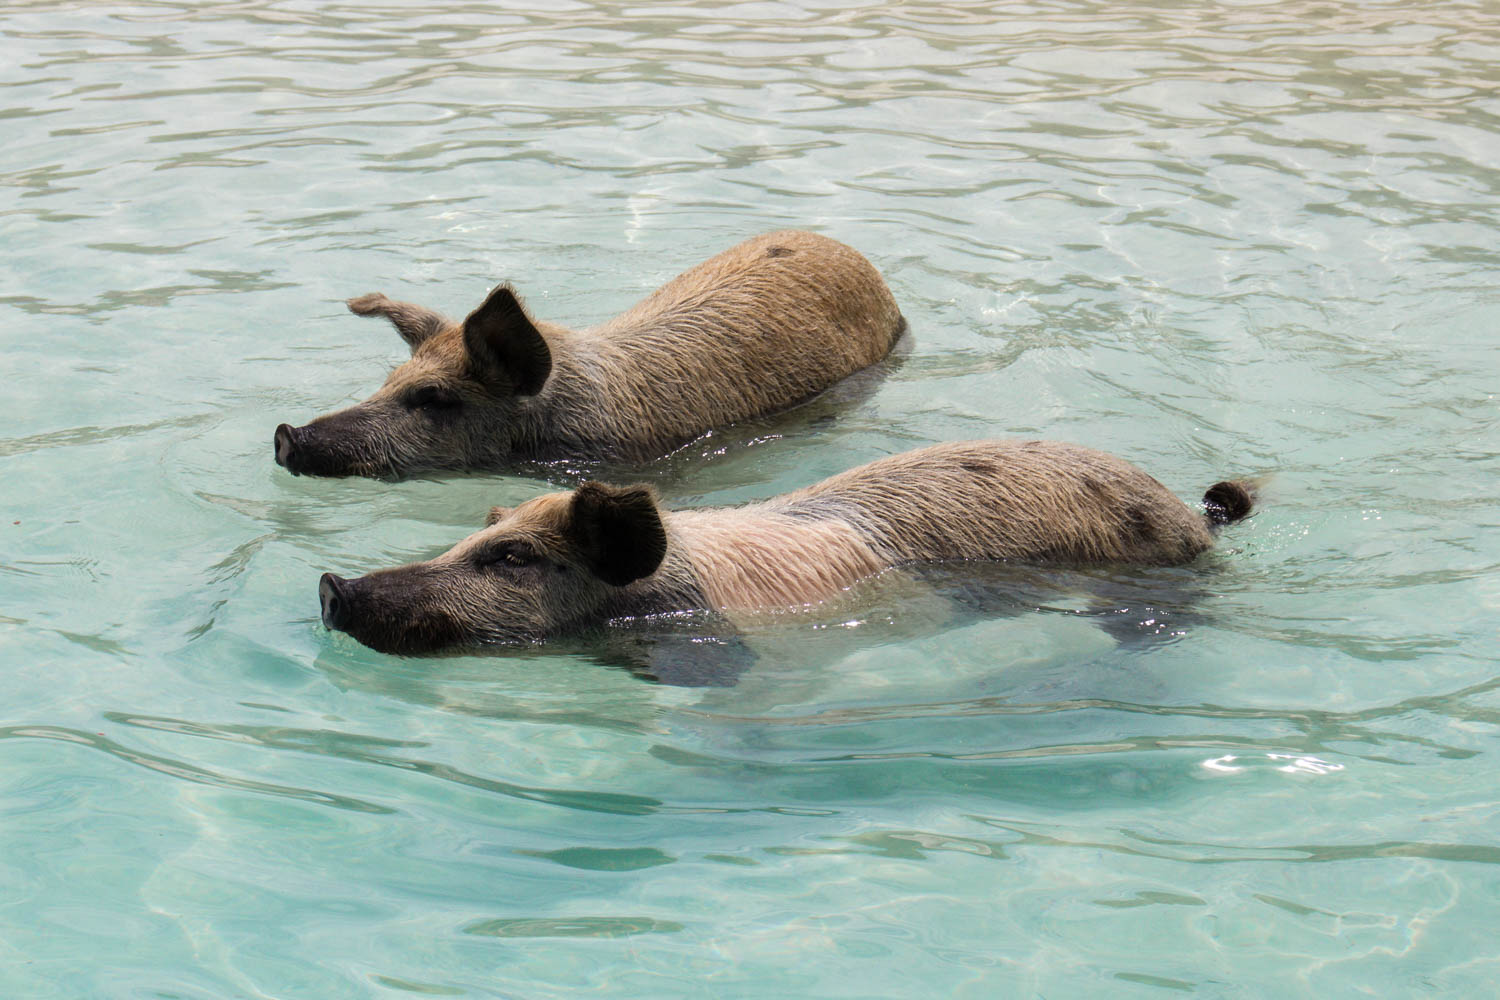 Pig Island tours are the most popular Bahamas excursions in the country. You can take a Pig Island Bahamas tour from Nassau or Fort Lauderdale/ Miami.